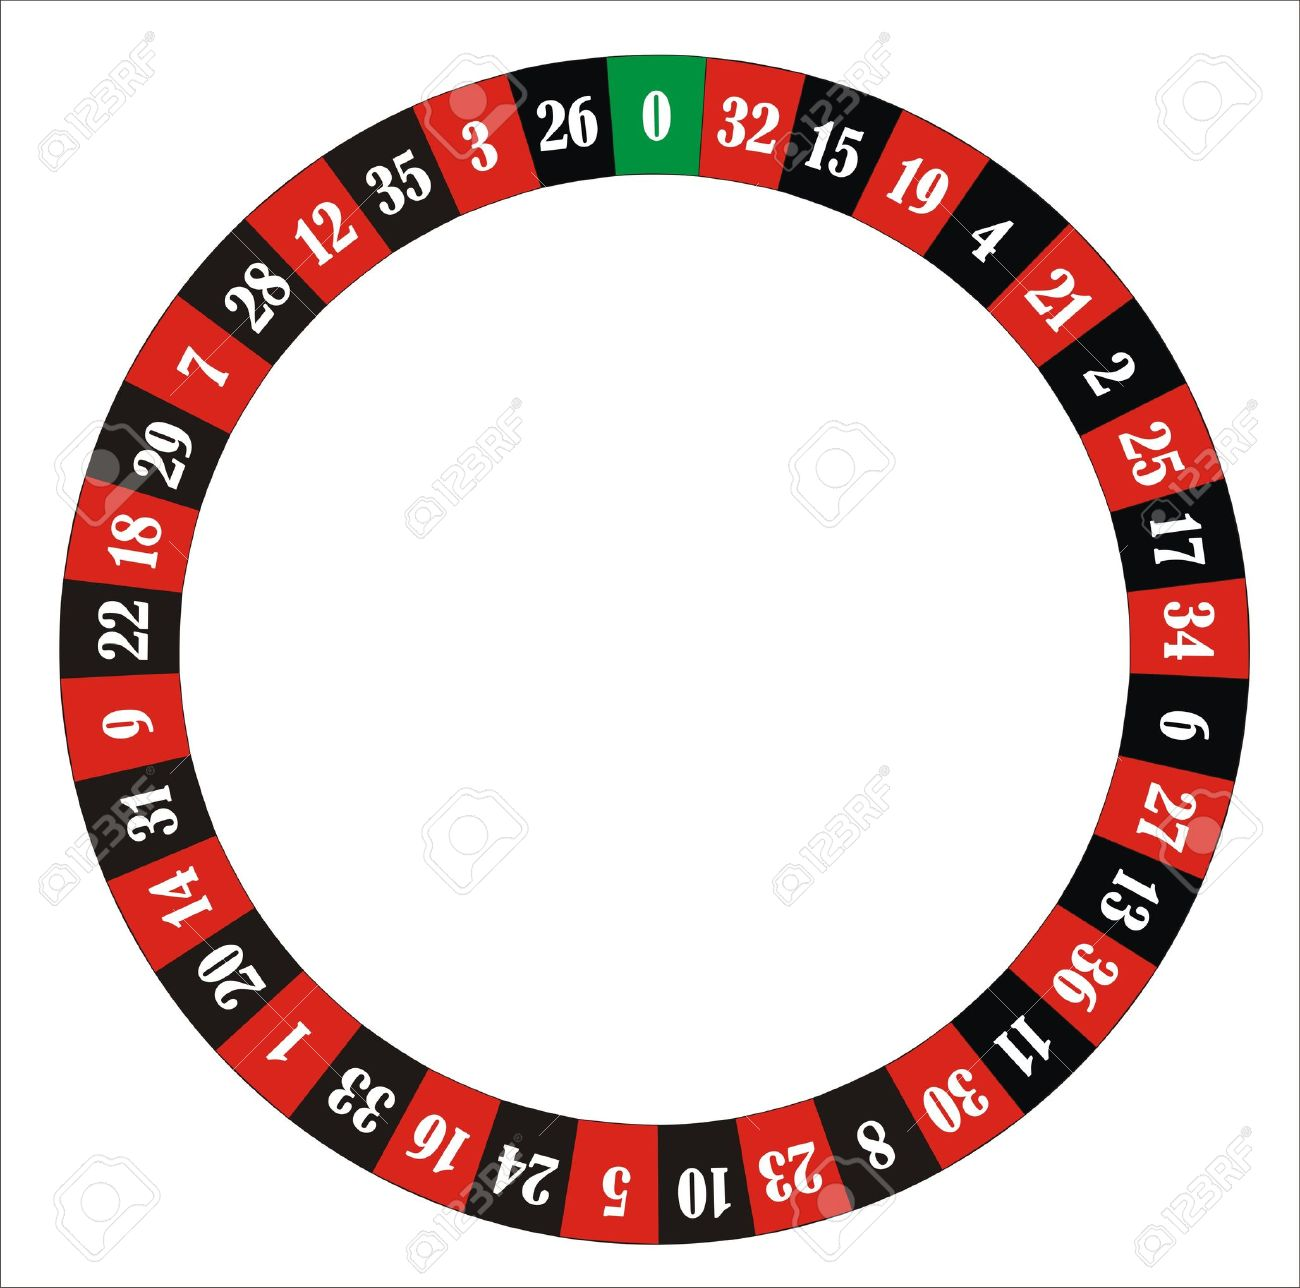 computer generated roulette wheel with numbers and colours - 10454910